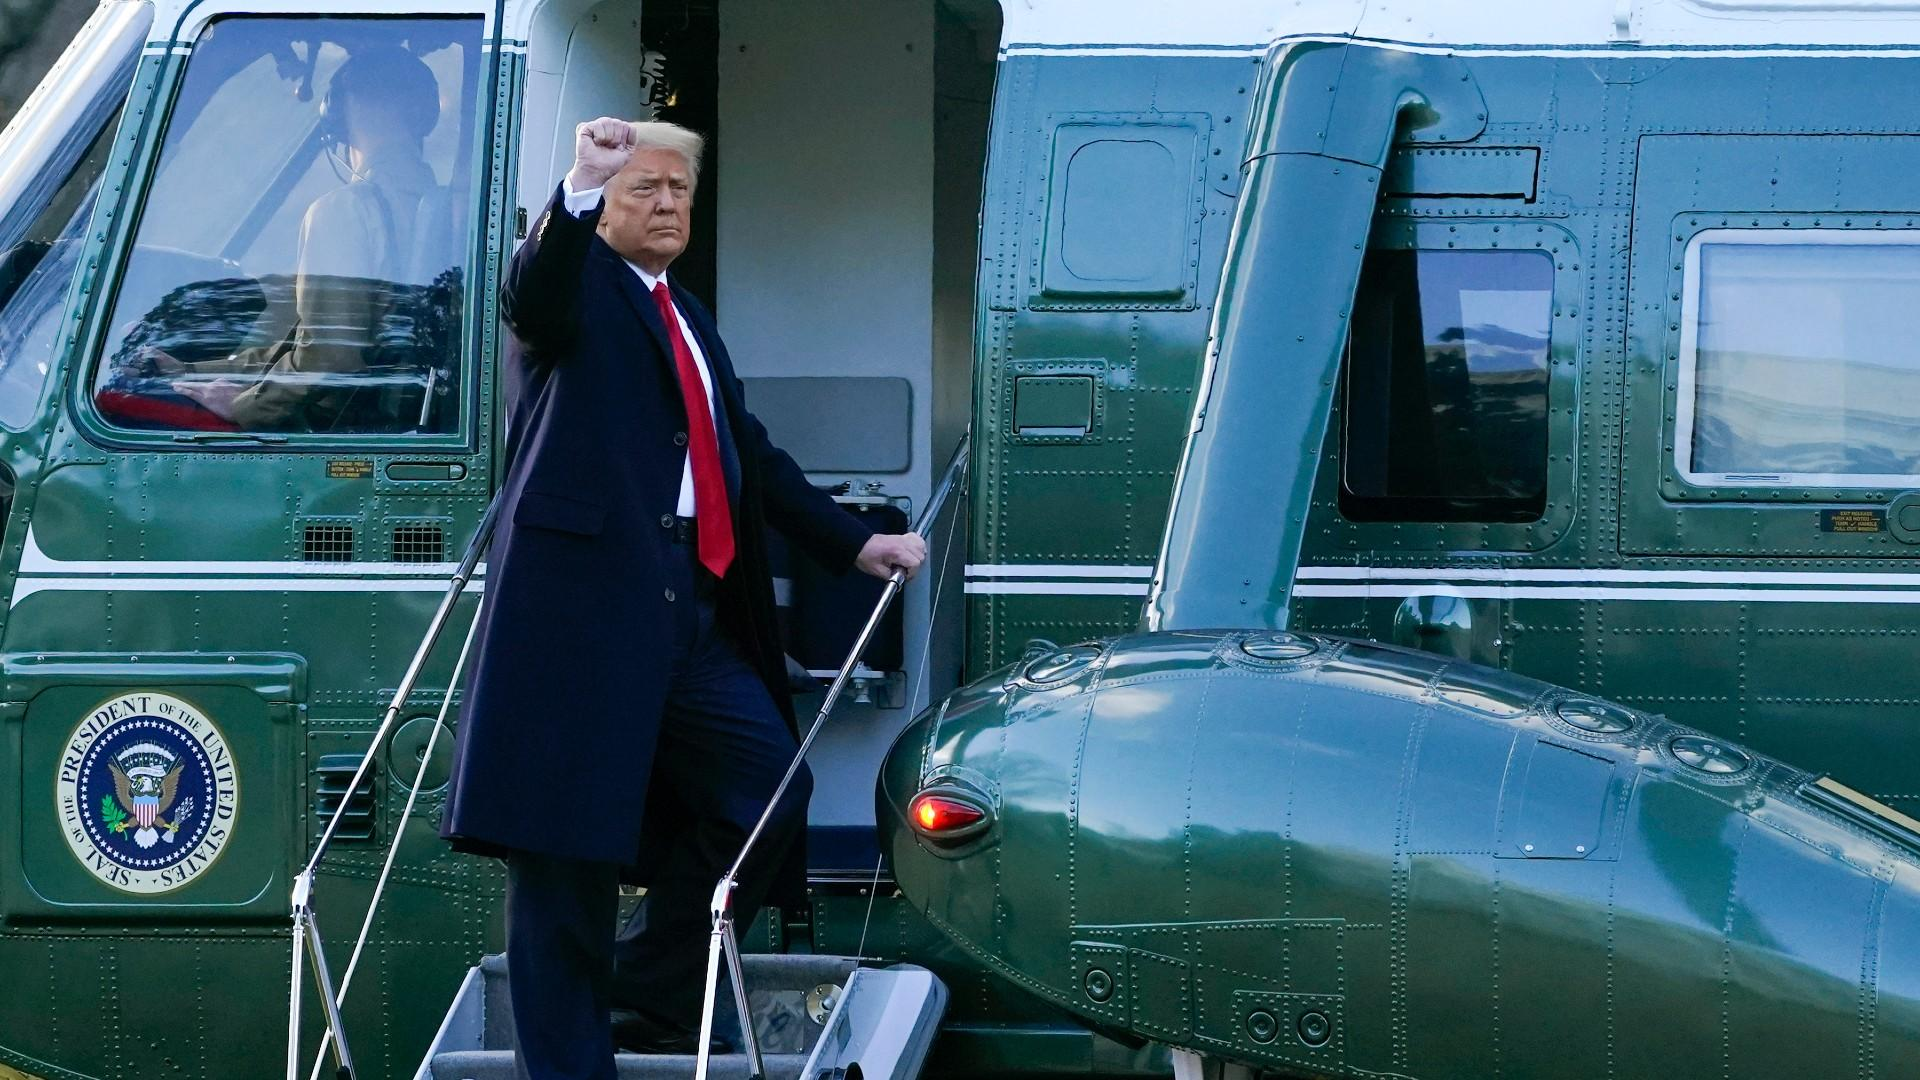 President Donald Trump gestures as he boards Marine One on the South Lawn of the White House, Wednesday, Jan. 20, 2021, in Washington. Trump is en route to his Mar-a-Lago Florida Resort. (AP Photo / Alex Brandon)